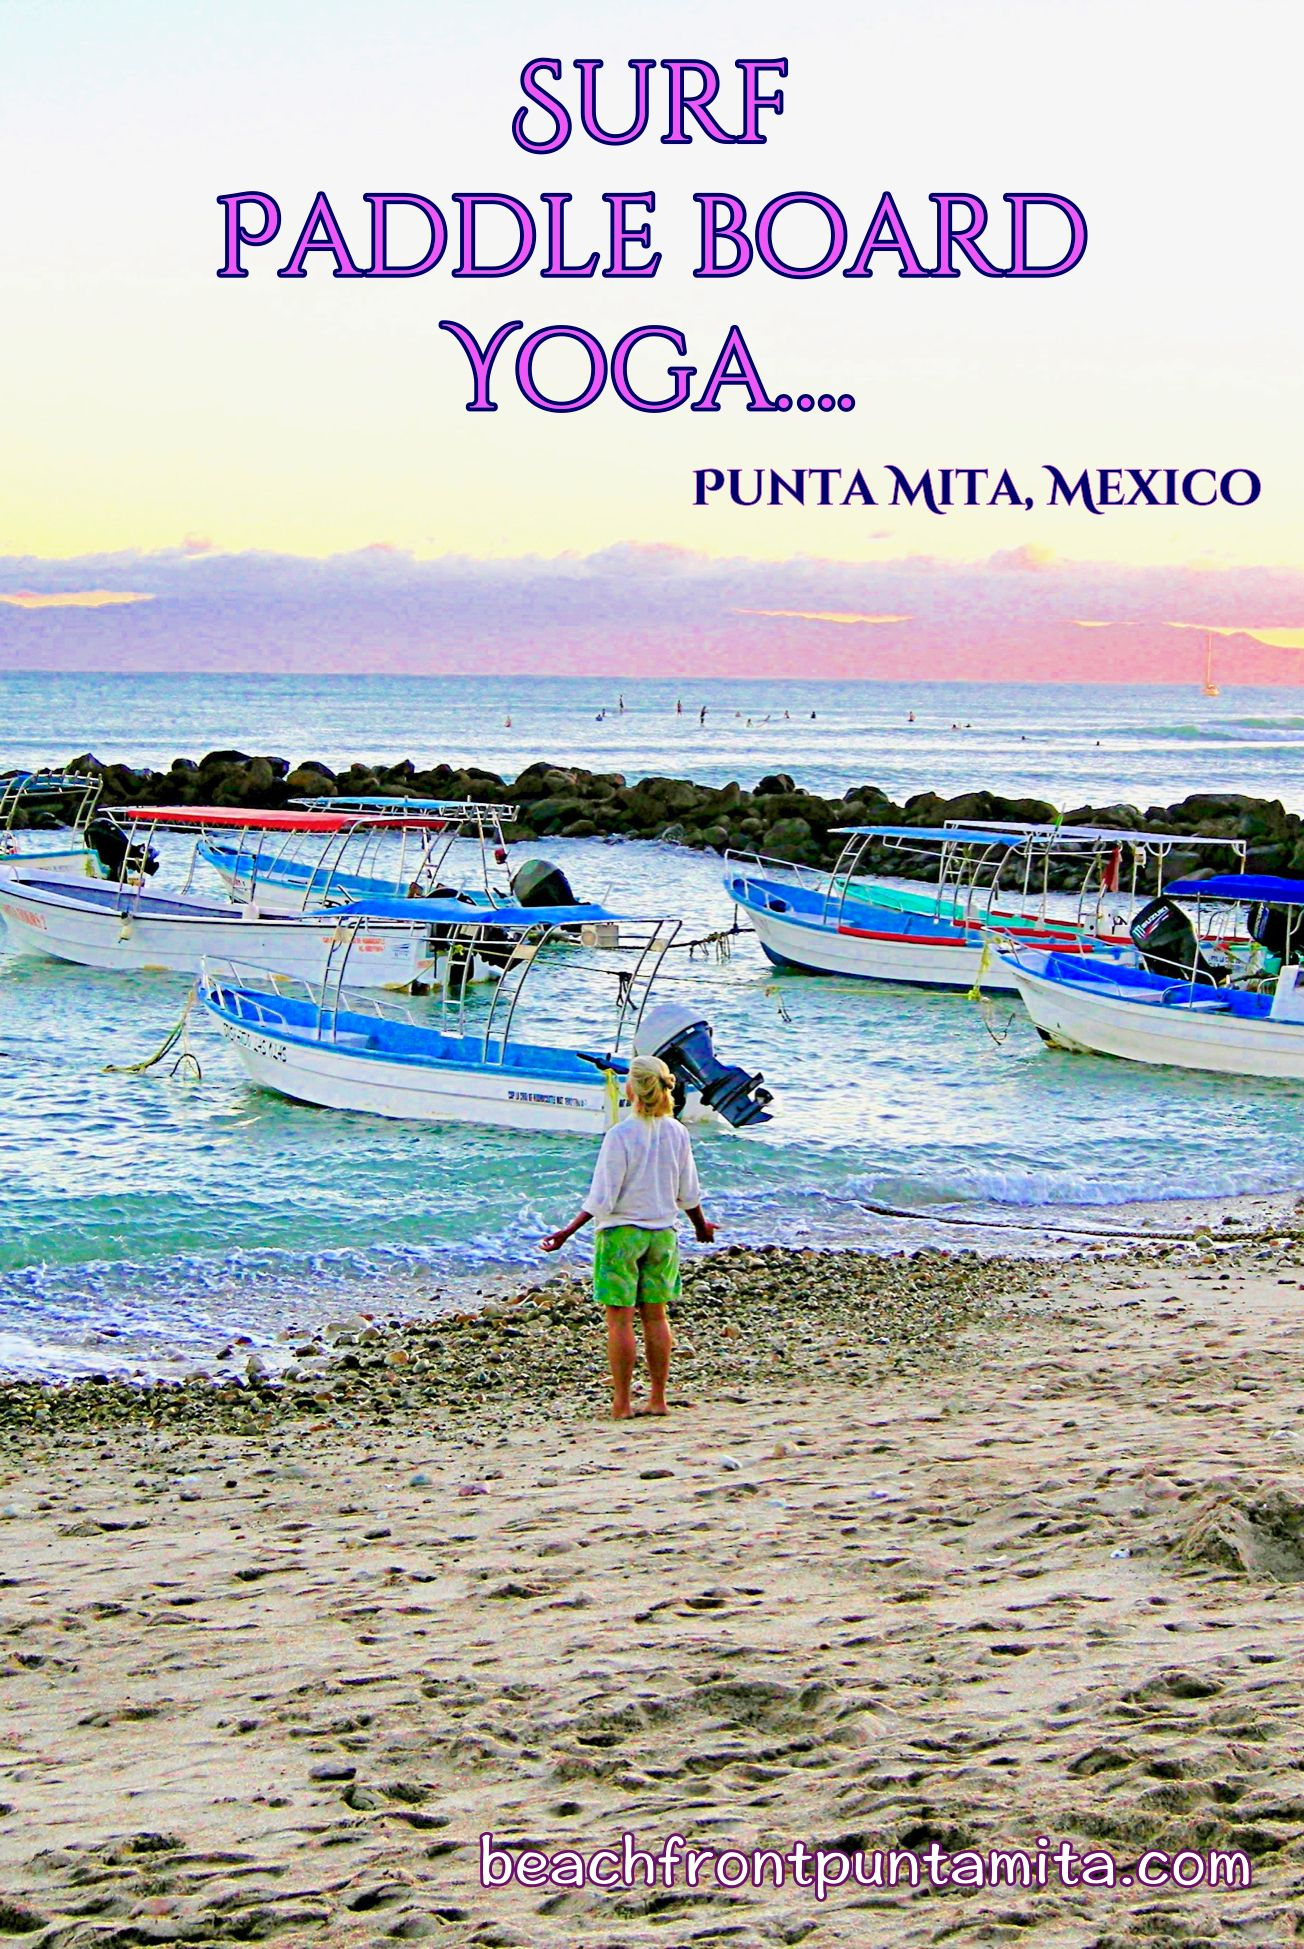 Punta De Mita Is A Small Town 35 Minutes From Puerto Vallarta And 10 Minutes From Sayulita There Are Many Su Mexico Travel America Travel South America Travel